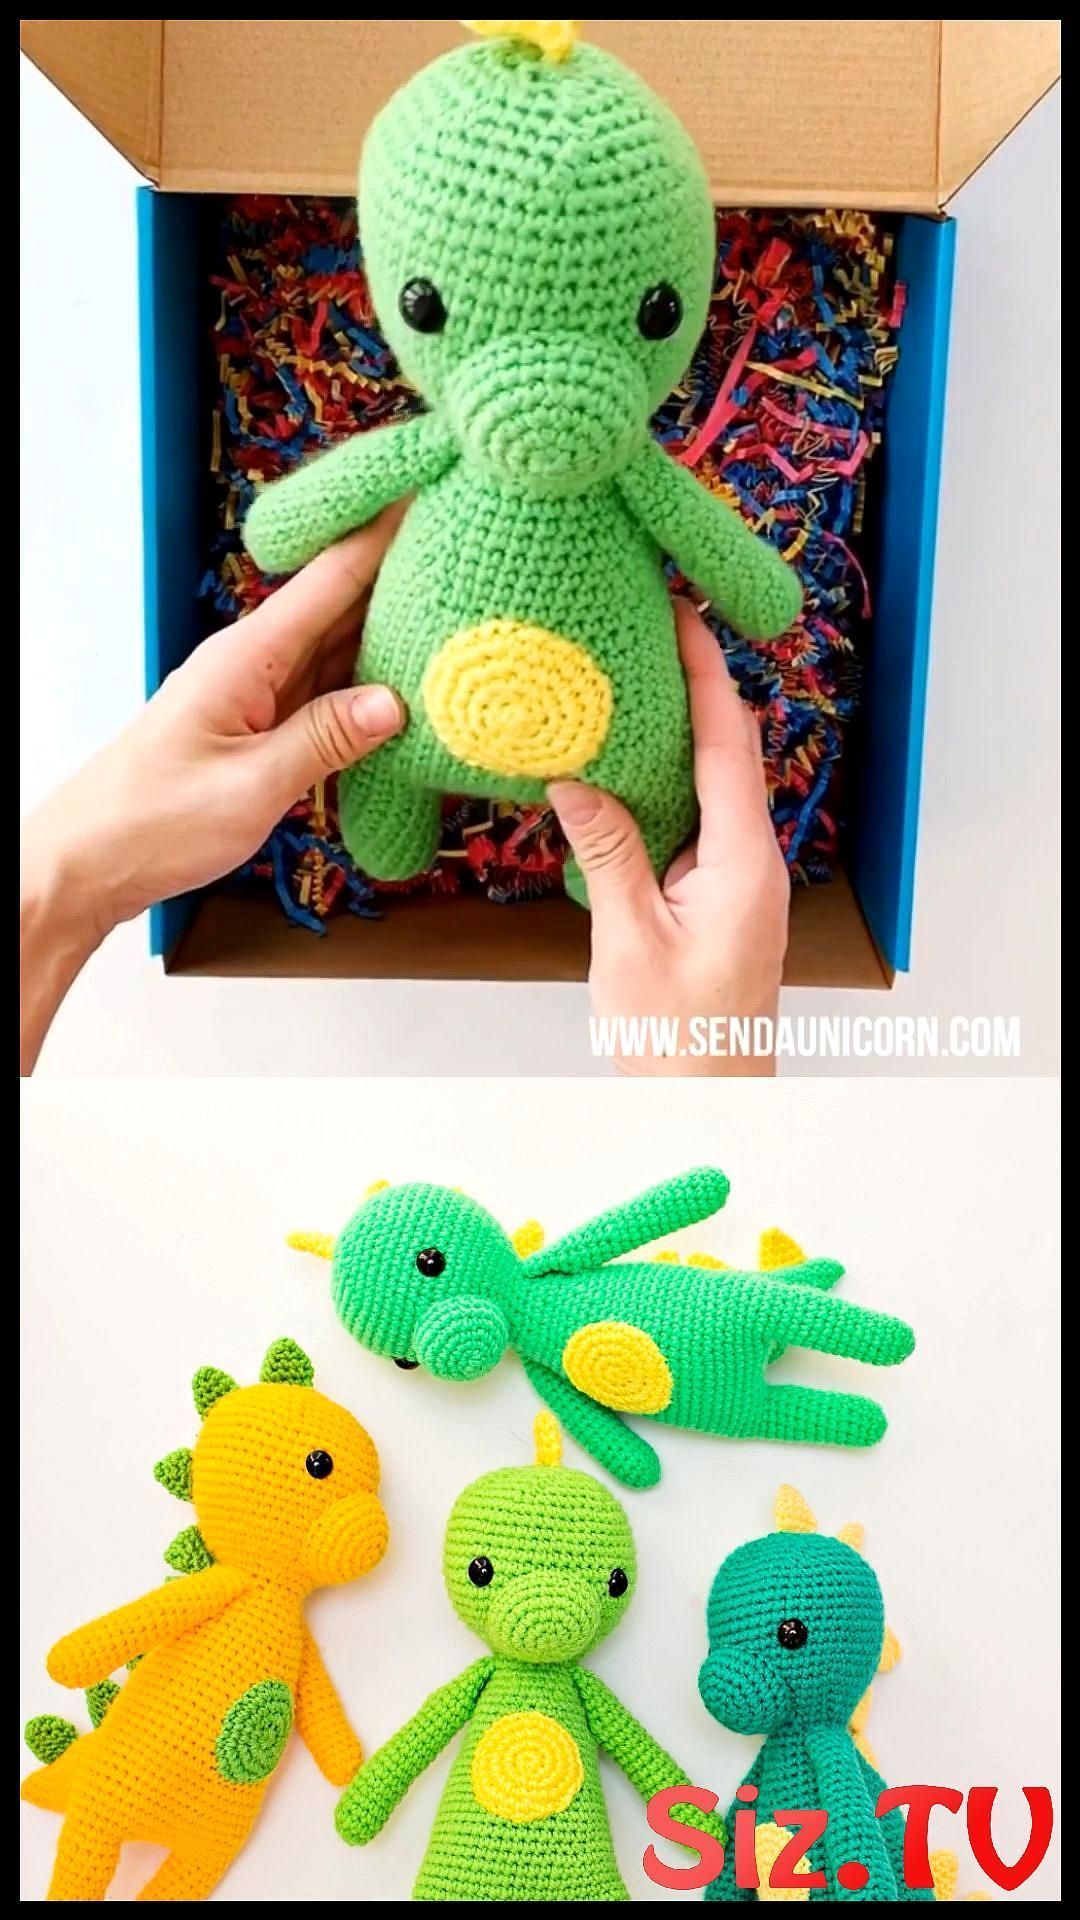 Send A Crochet Dinosaur Chomper Dinosaur Crochet Doll Make Sure To Follow Us On Facebook And Instagram And Use Hashtag Sendaunicorn Check Out Our Unicorn Boxes Here And Our Line Of Unicorn Tees Send A Crochet Dinosaur In The Mail Such A Cute Dinosaur Toy For Kids Handmade Dinosaur Crochet Toy Pattern #amigurumibonecavideos #send #crochet #dinosaur #chomper #doll #make #sure #follow #facebook #instagram #hashtag #sendaunicorn #check #unicorn #boxes #here #line #tees #crochetdinosaurpatterns Send #crochetdinosaurpatterns